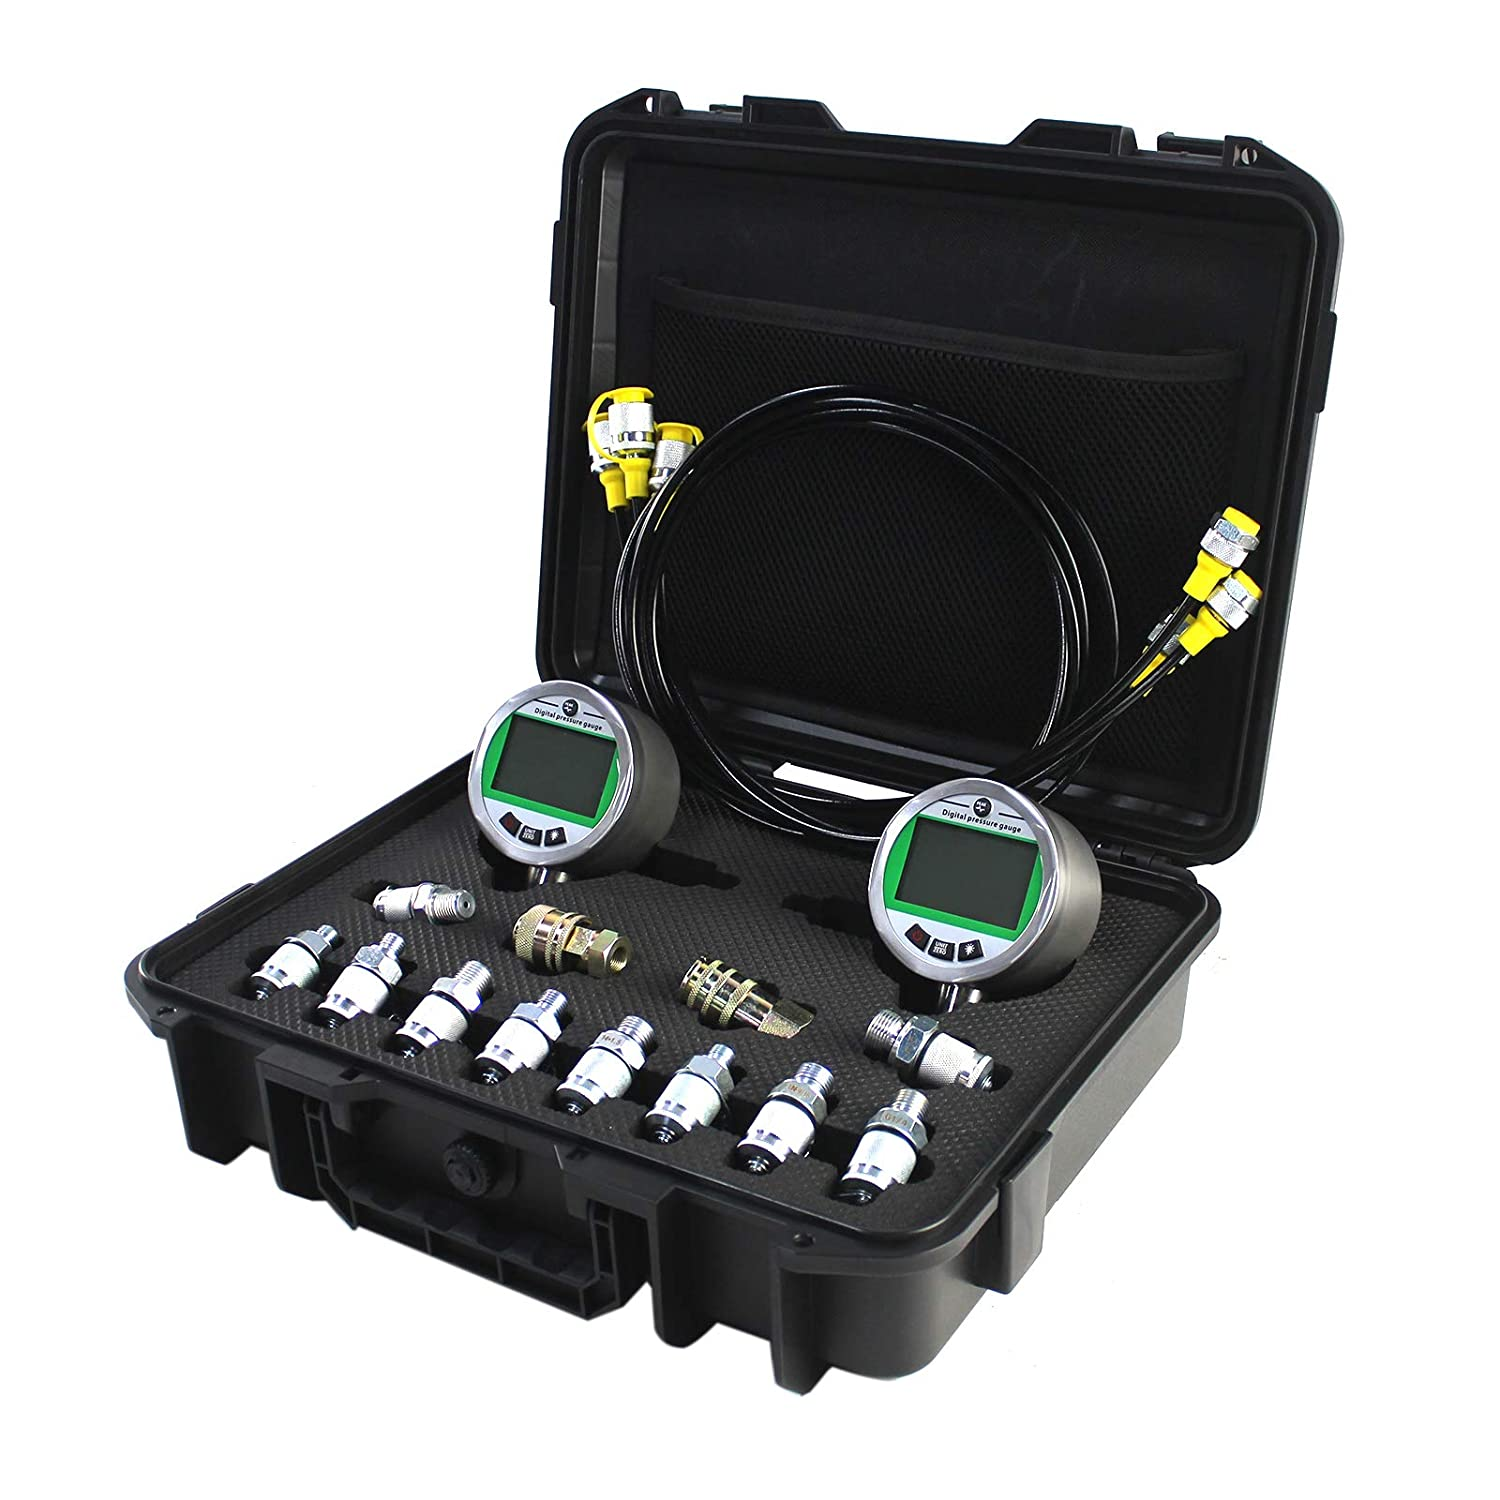 1 Year Warranty SINOCMP Digital Pressure Gauge Kit with 2 80MPA//12000PSI Pressure Gauges 3 Test Hoses and 12 Couplings Hydraulic Gas Water Pressure Test Kit with Backlight